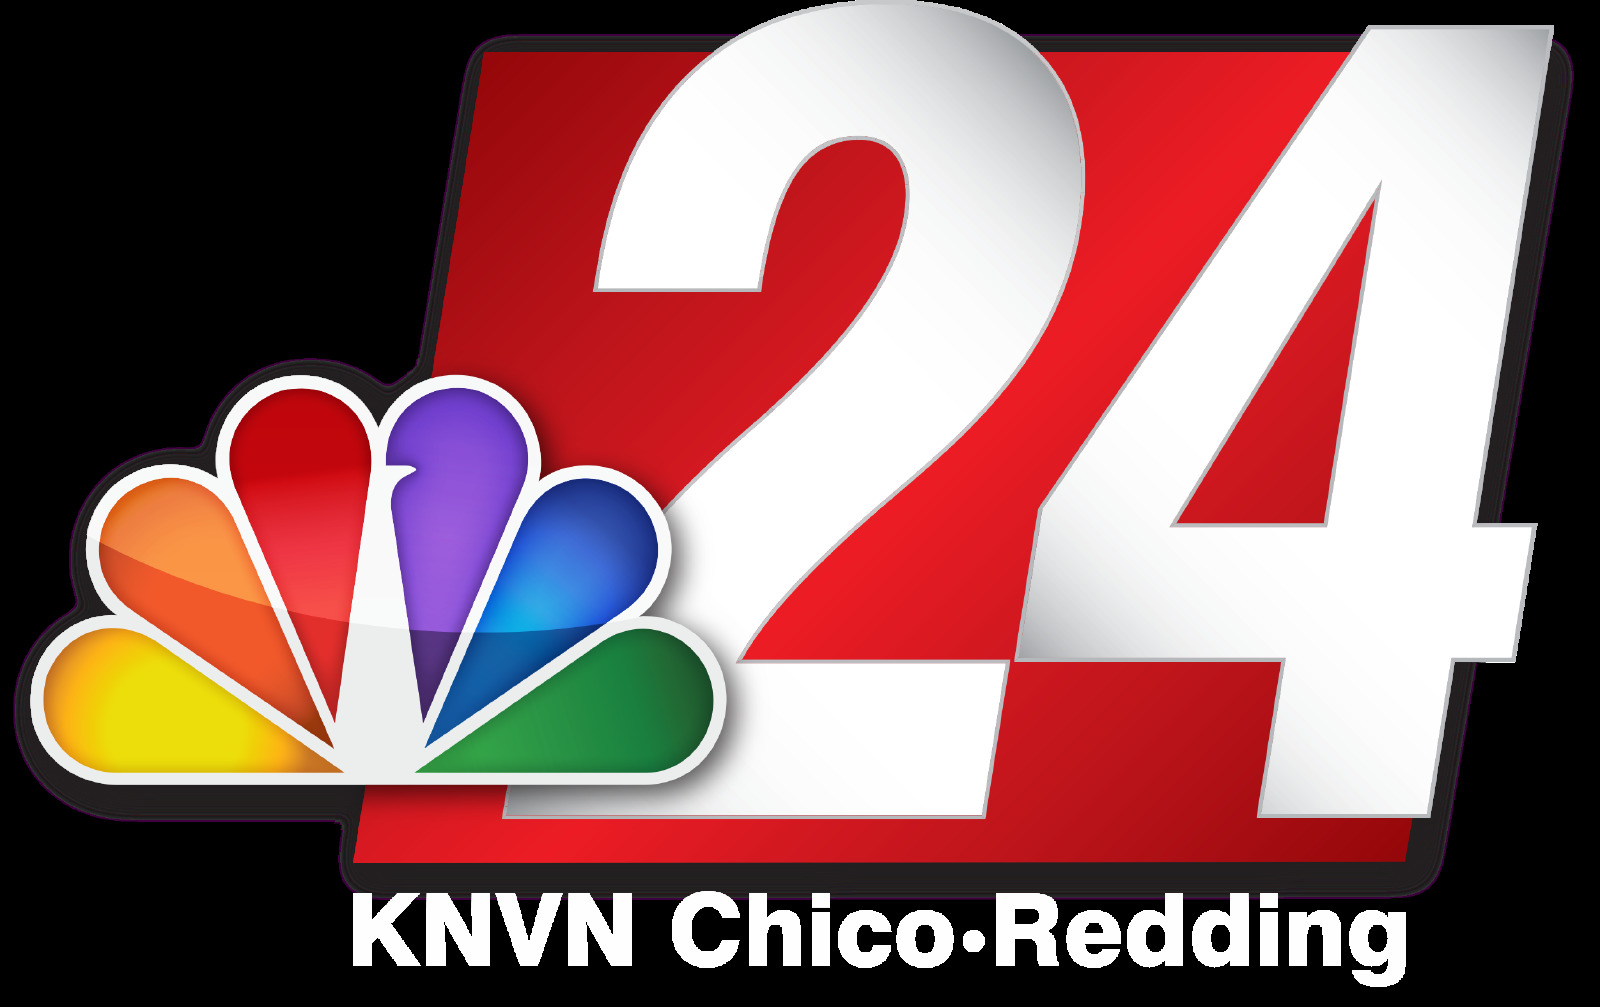 KNVN Chico-Redding is a Proud Sponser of Cool April Nites